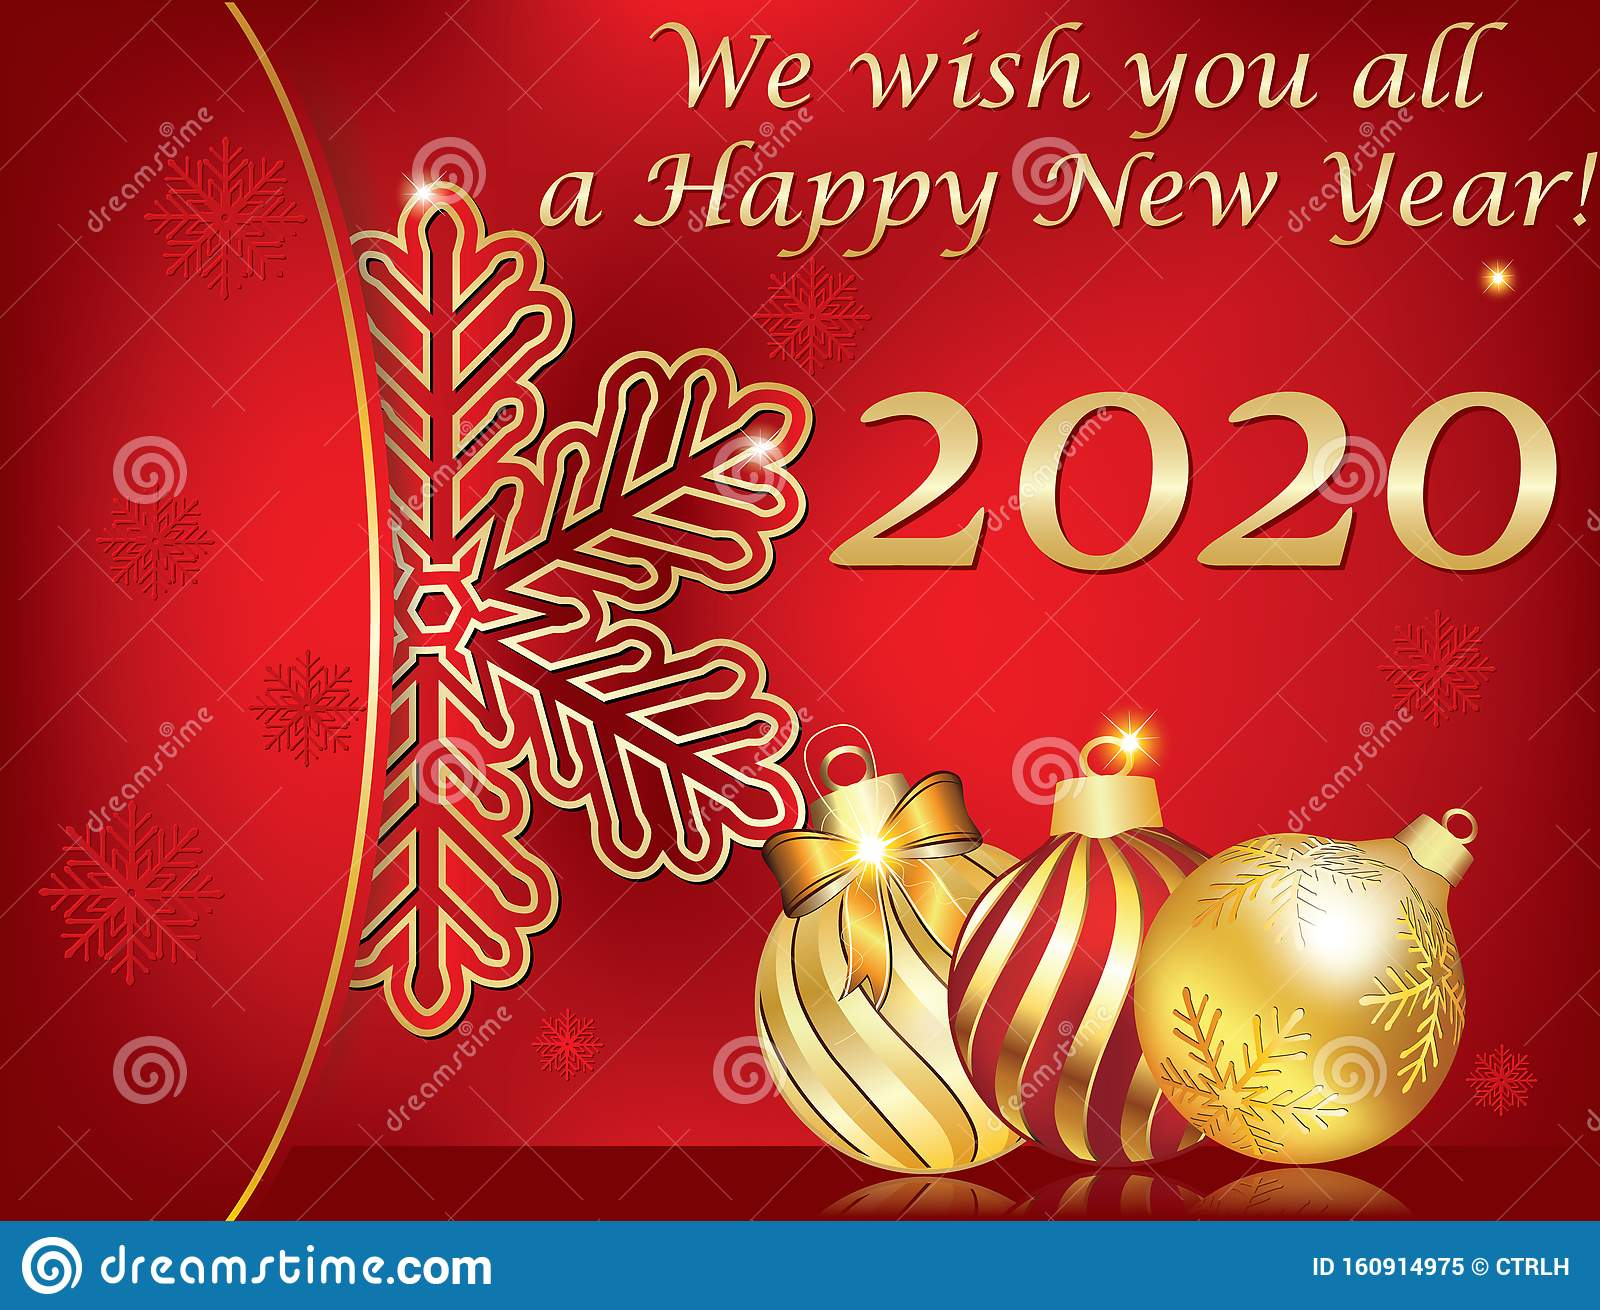 Happy New Year 2020 Corporate Greeting Card With Red And